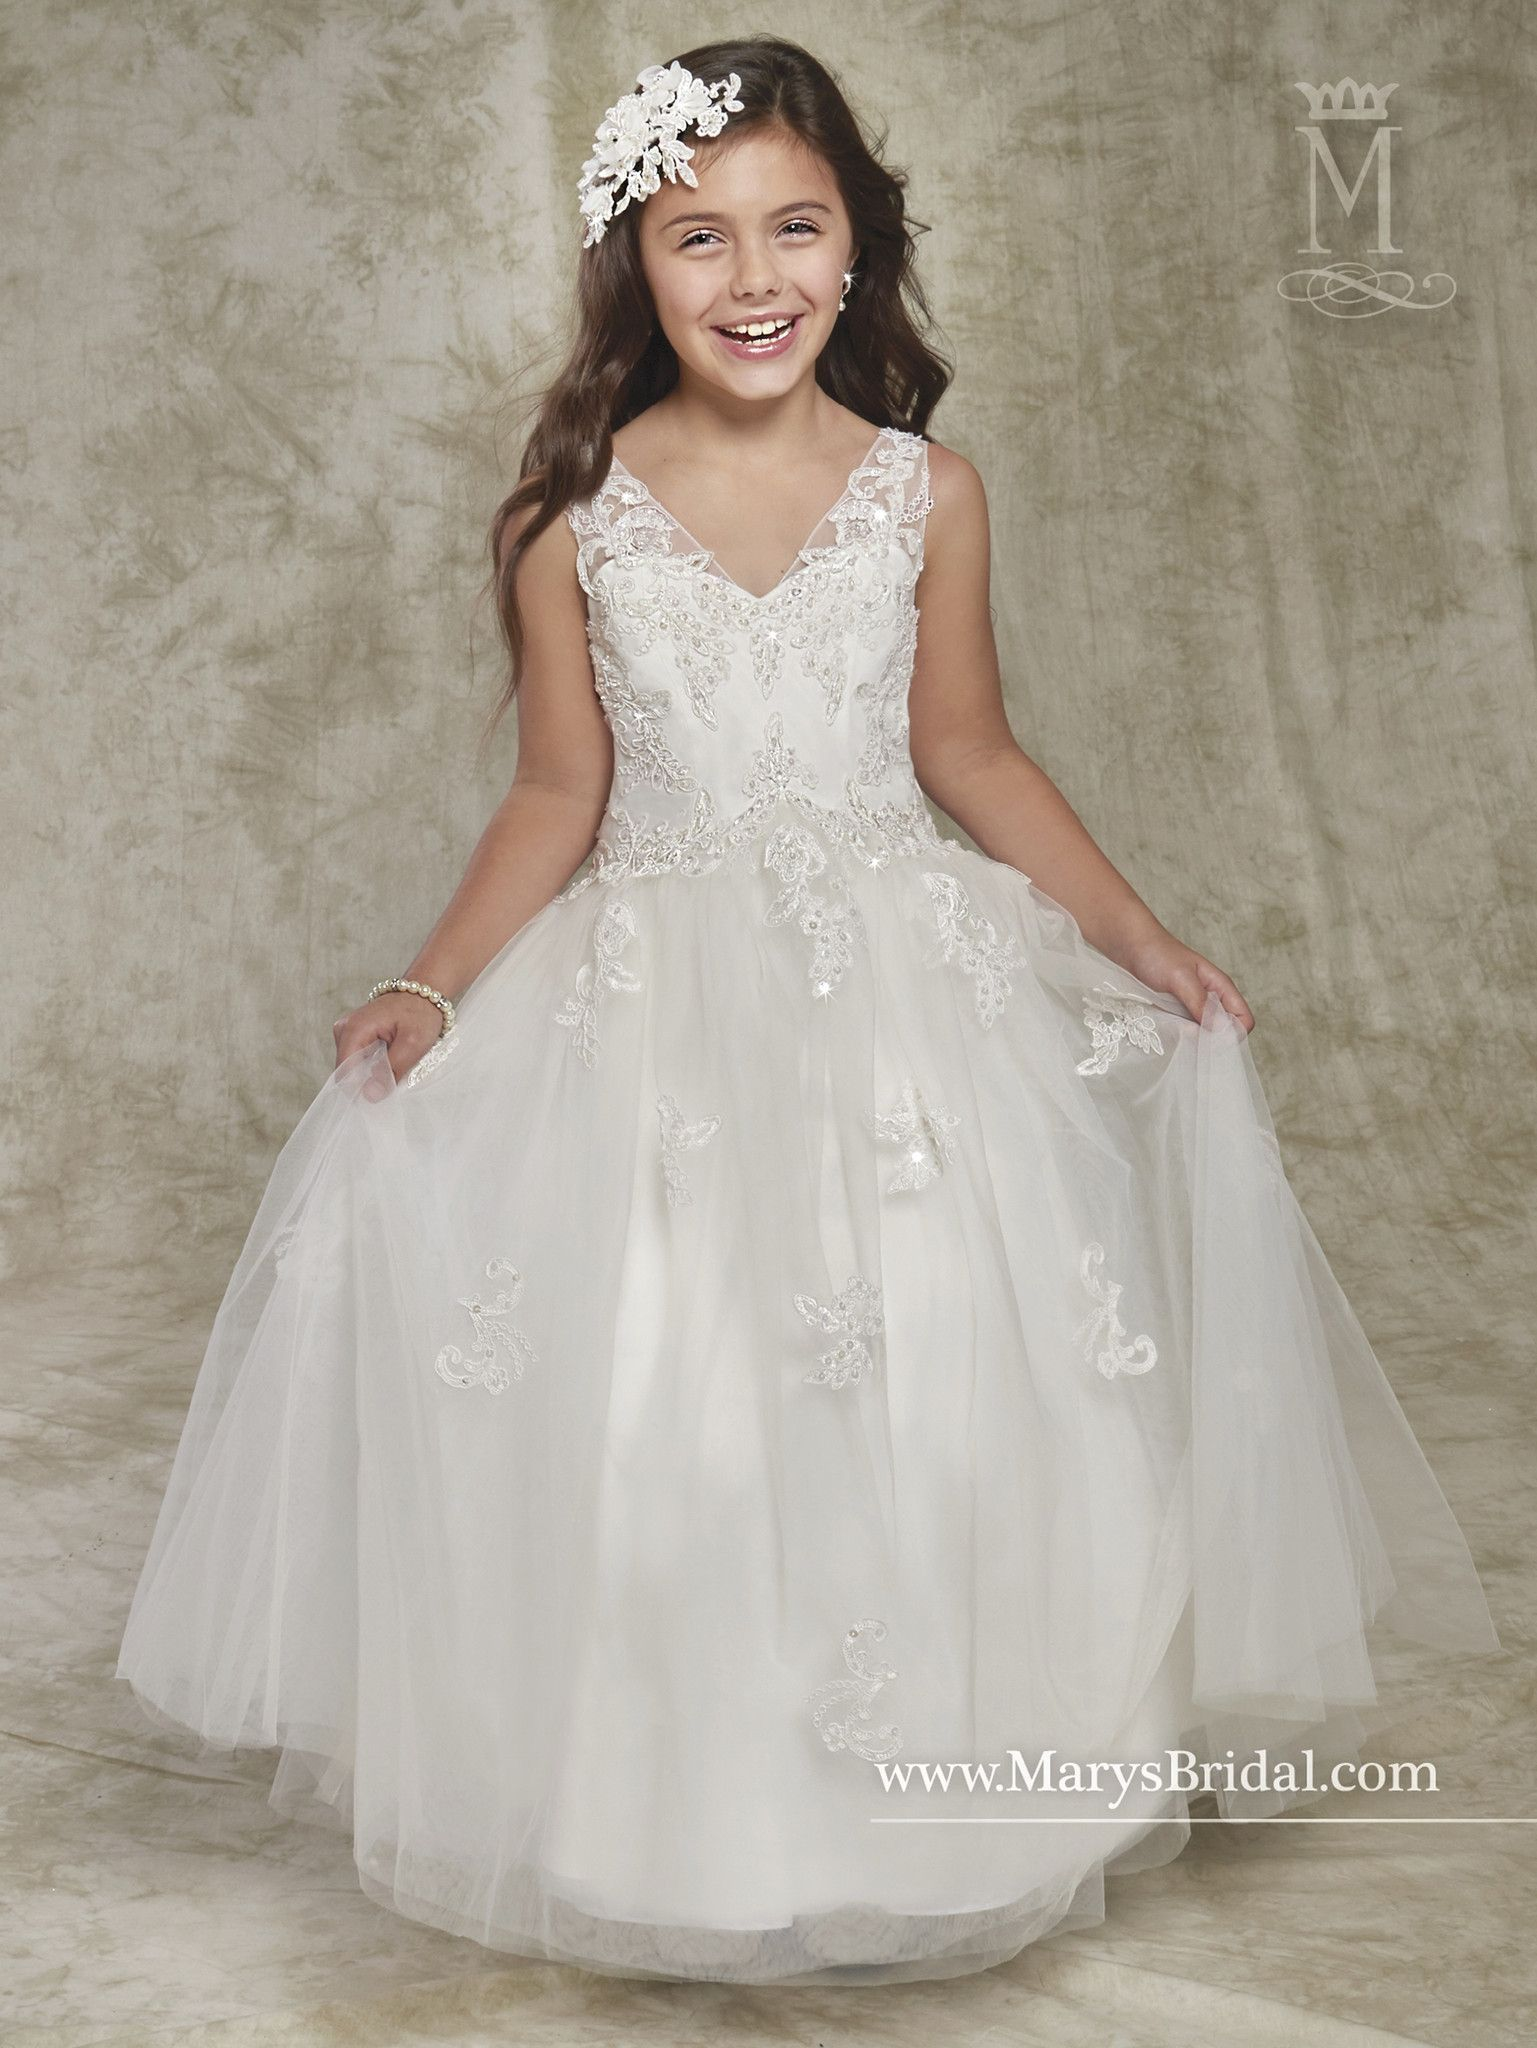 05fb88dcdf6 Sleeveless Sequined Lace Flower Girl Dress by Mary s Bridal Cupids F536